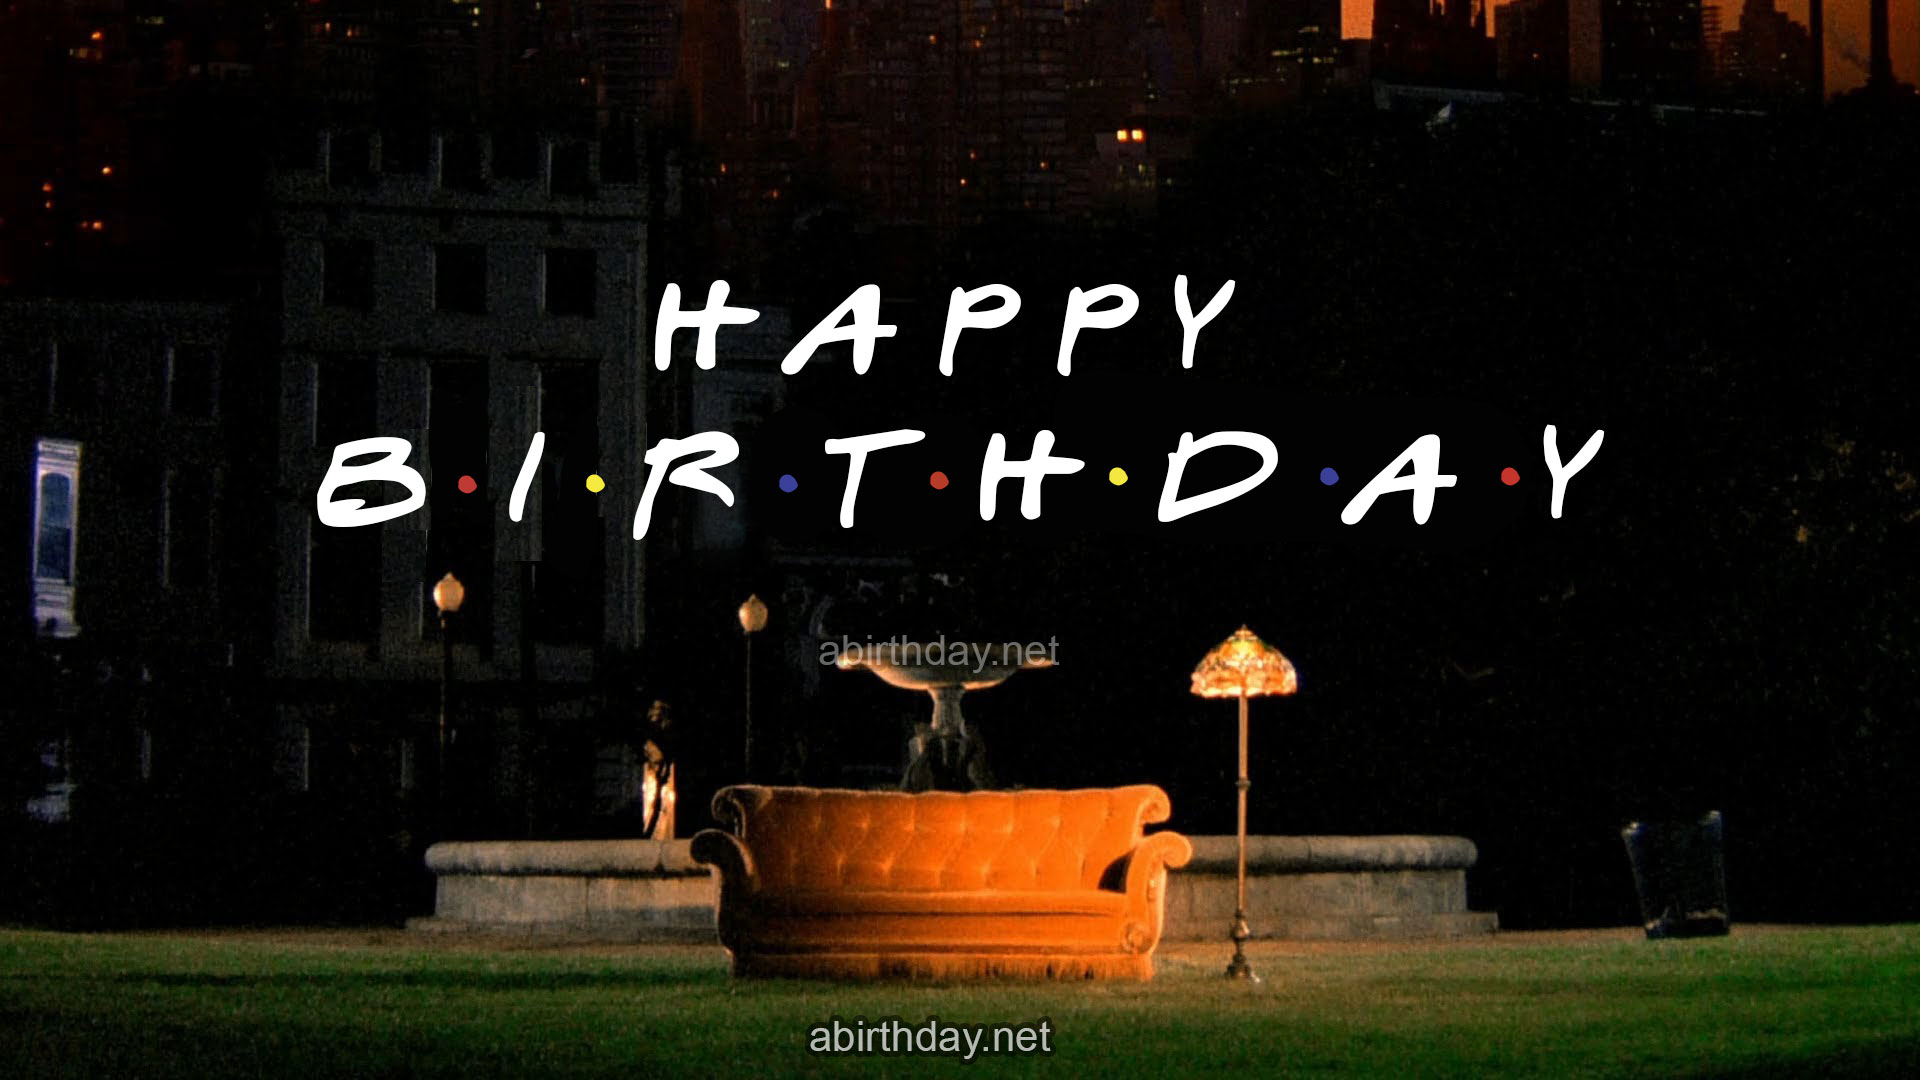 FRIENDS HAPPY BIRTHDAY - MEMES, WISHES AND QUOTES